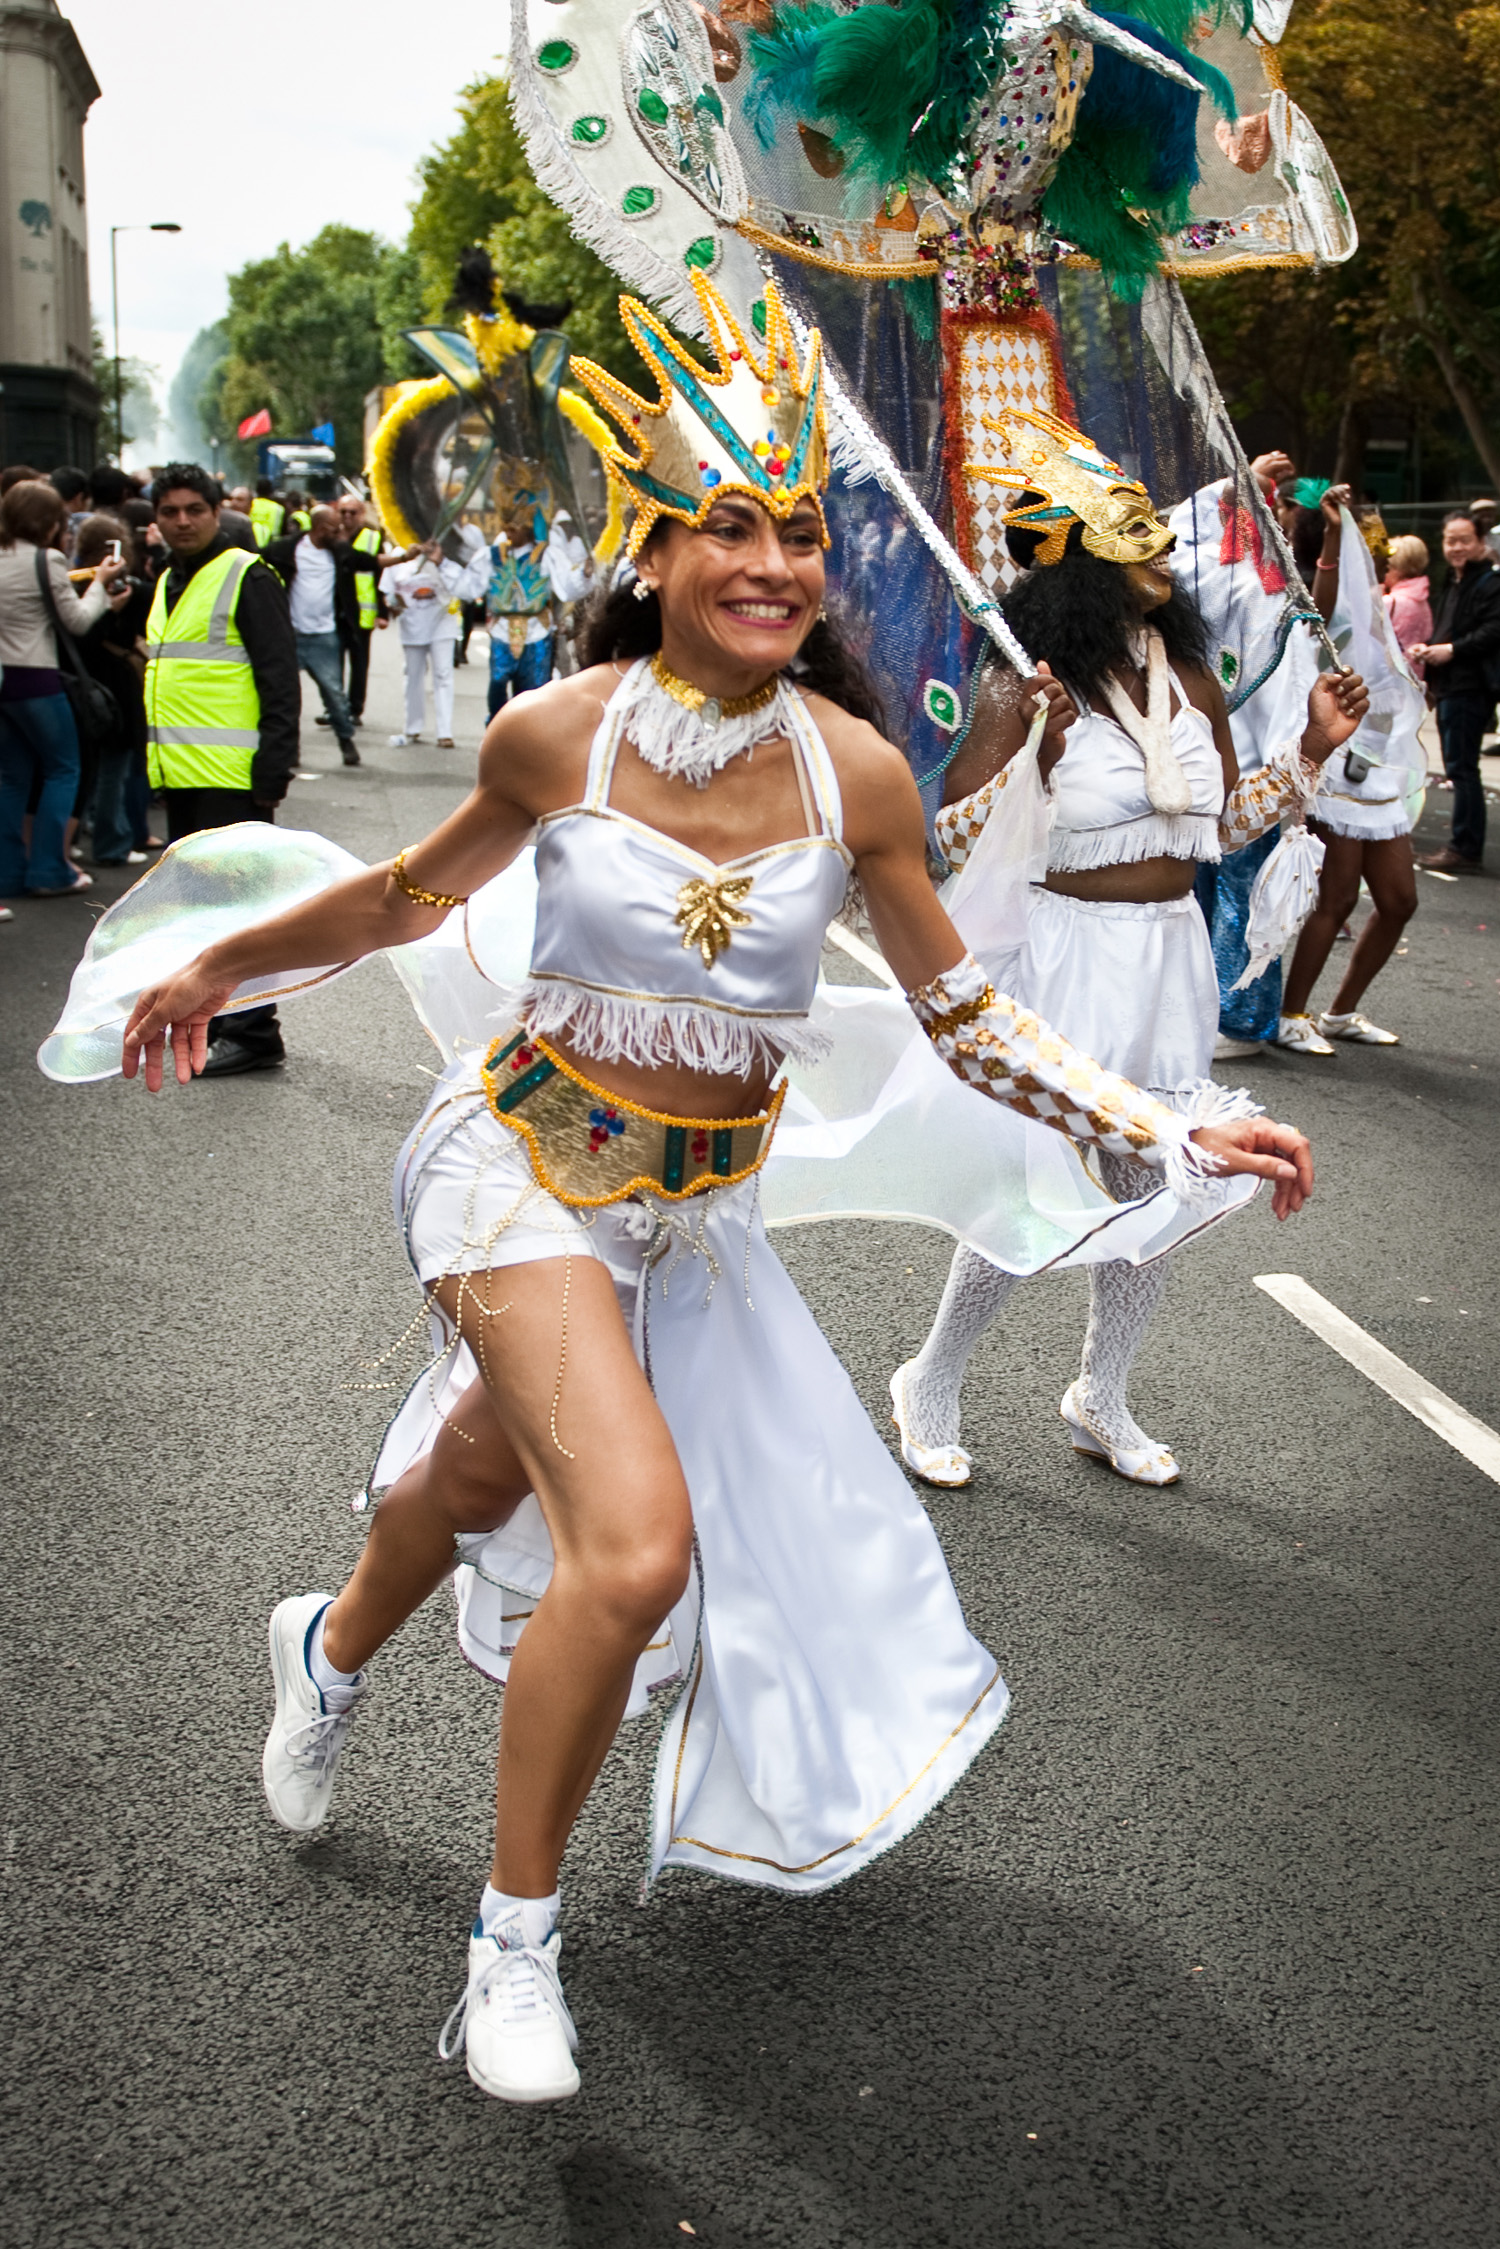 Carnival_the_rest_26